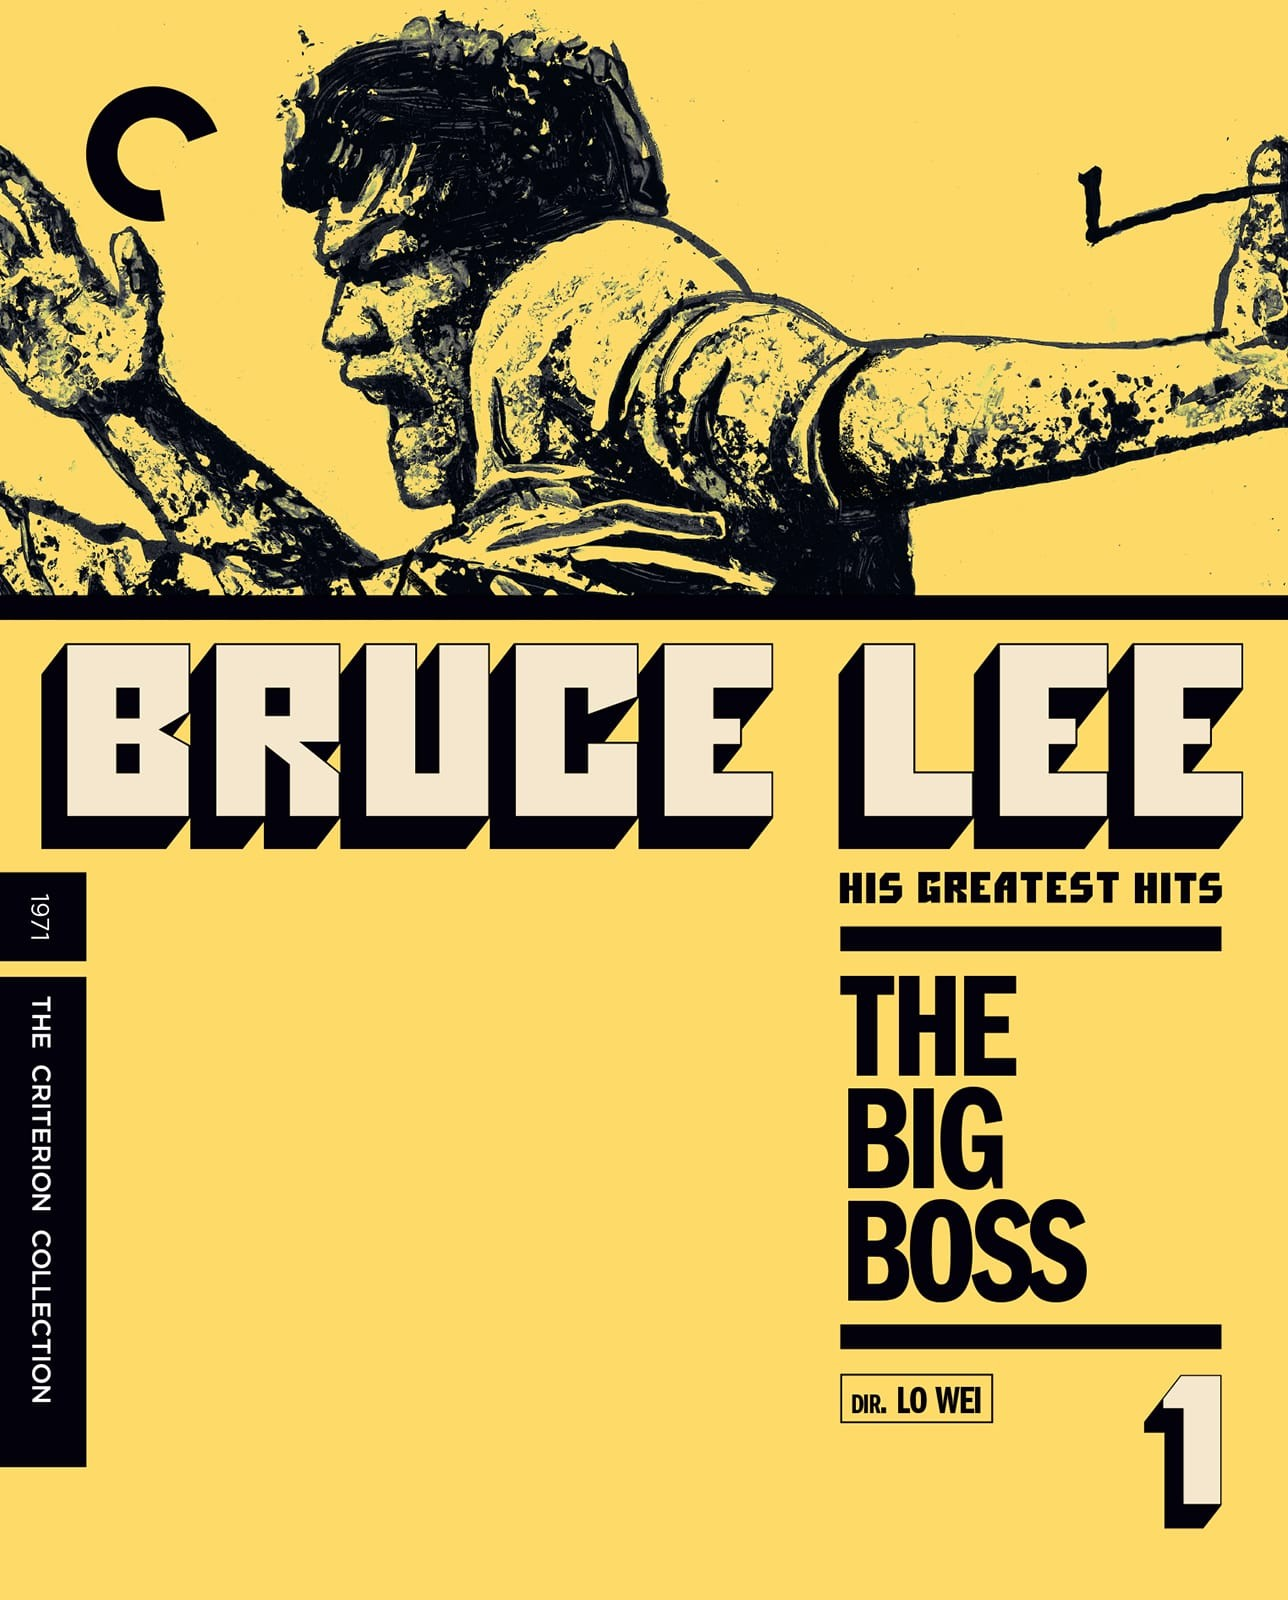 The Big Boss (1971) | The Criterion Collection